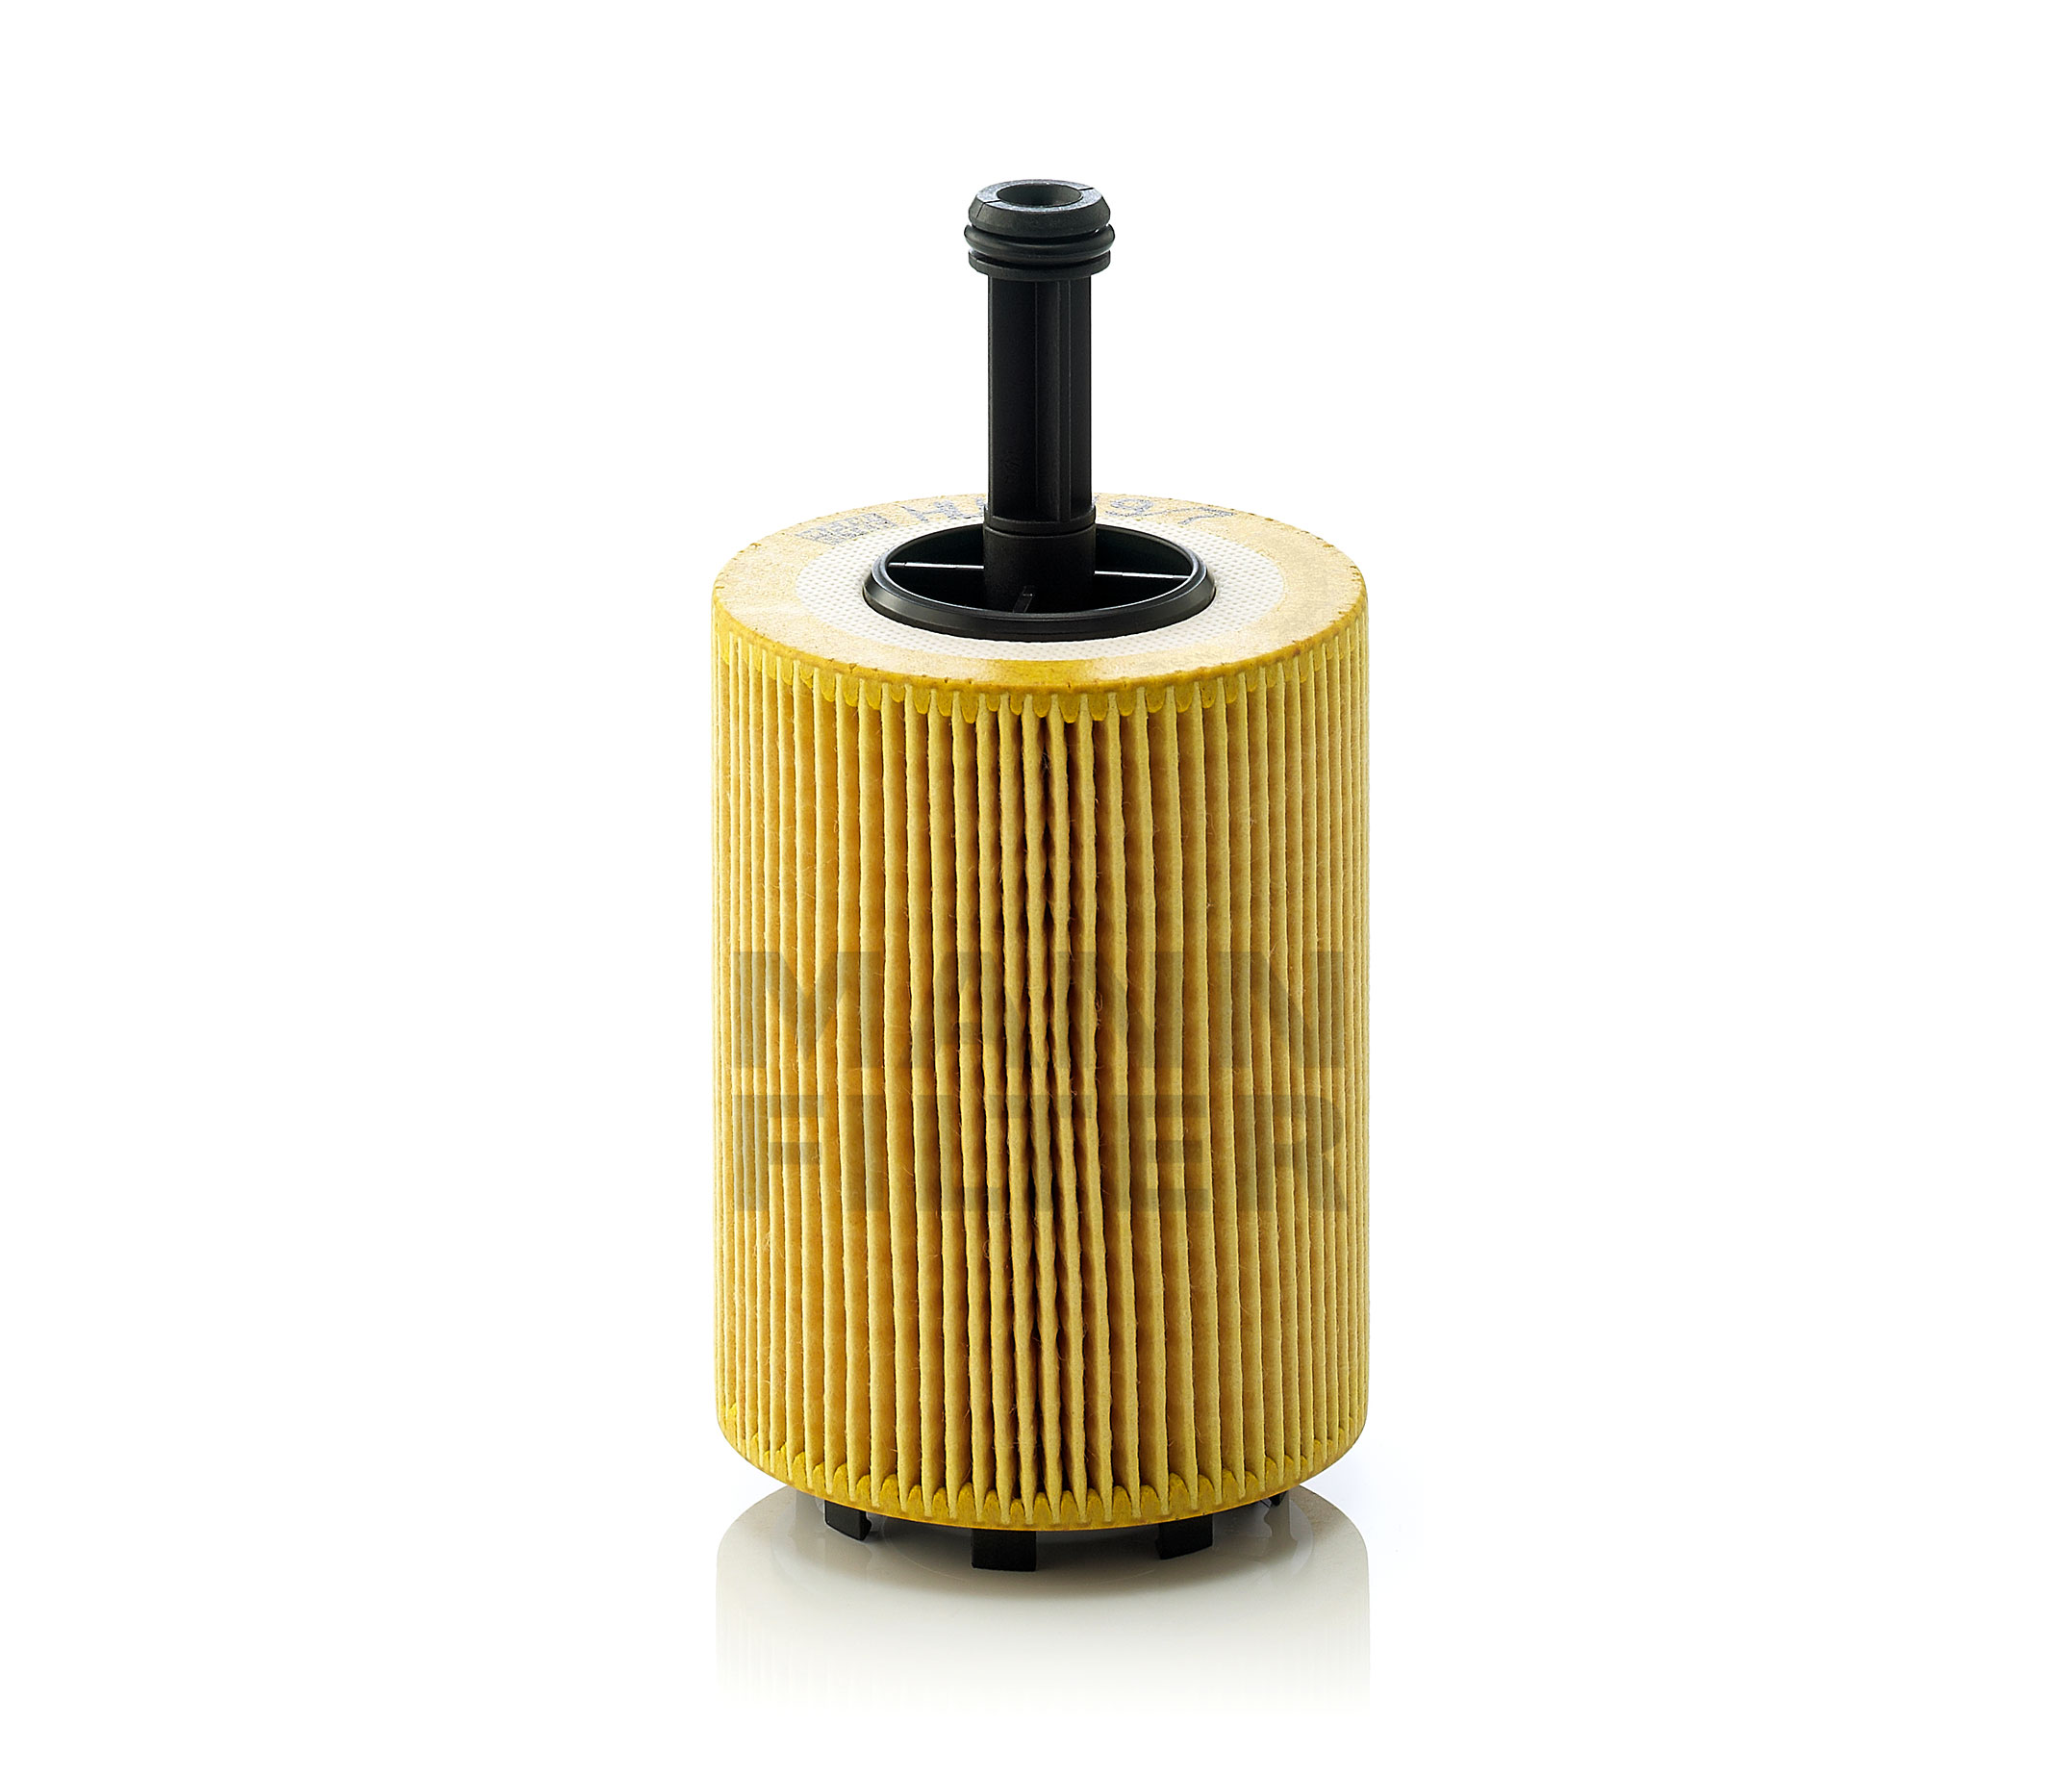 Mann Oil Filter Hu719  7x Fits Volkswagen Golf 1 9 Tdi Mk5